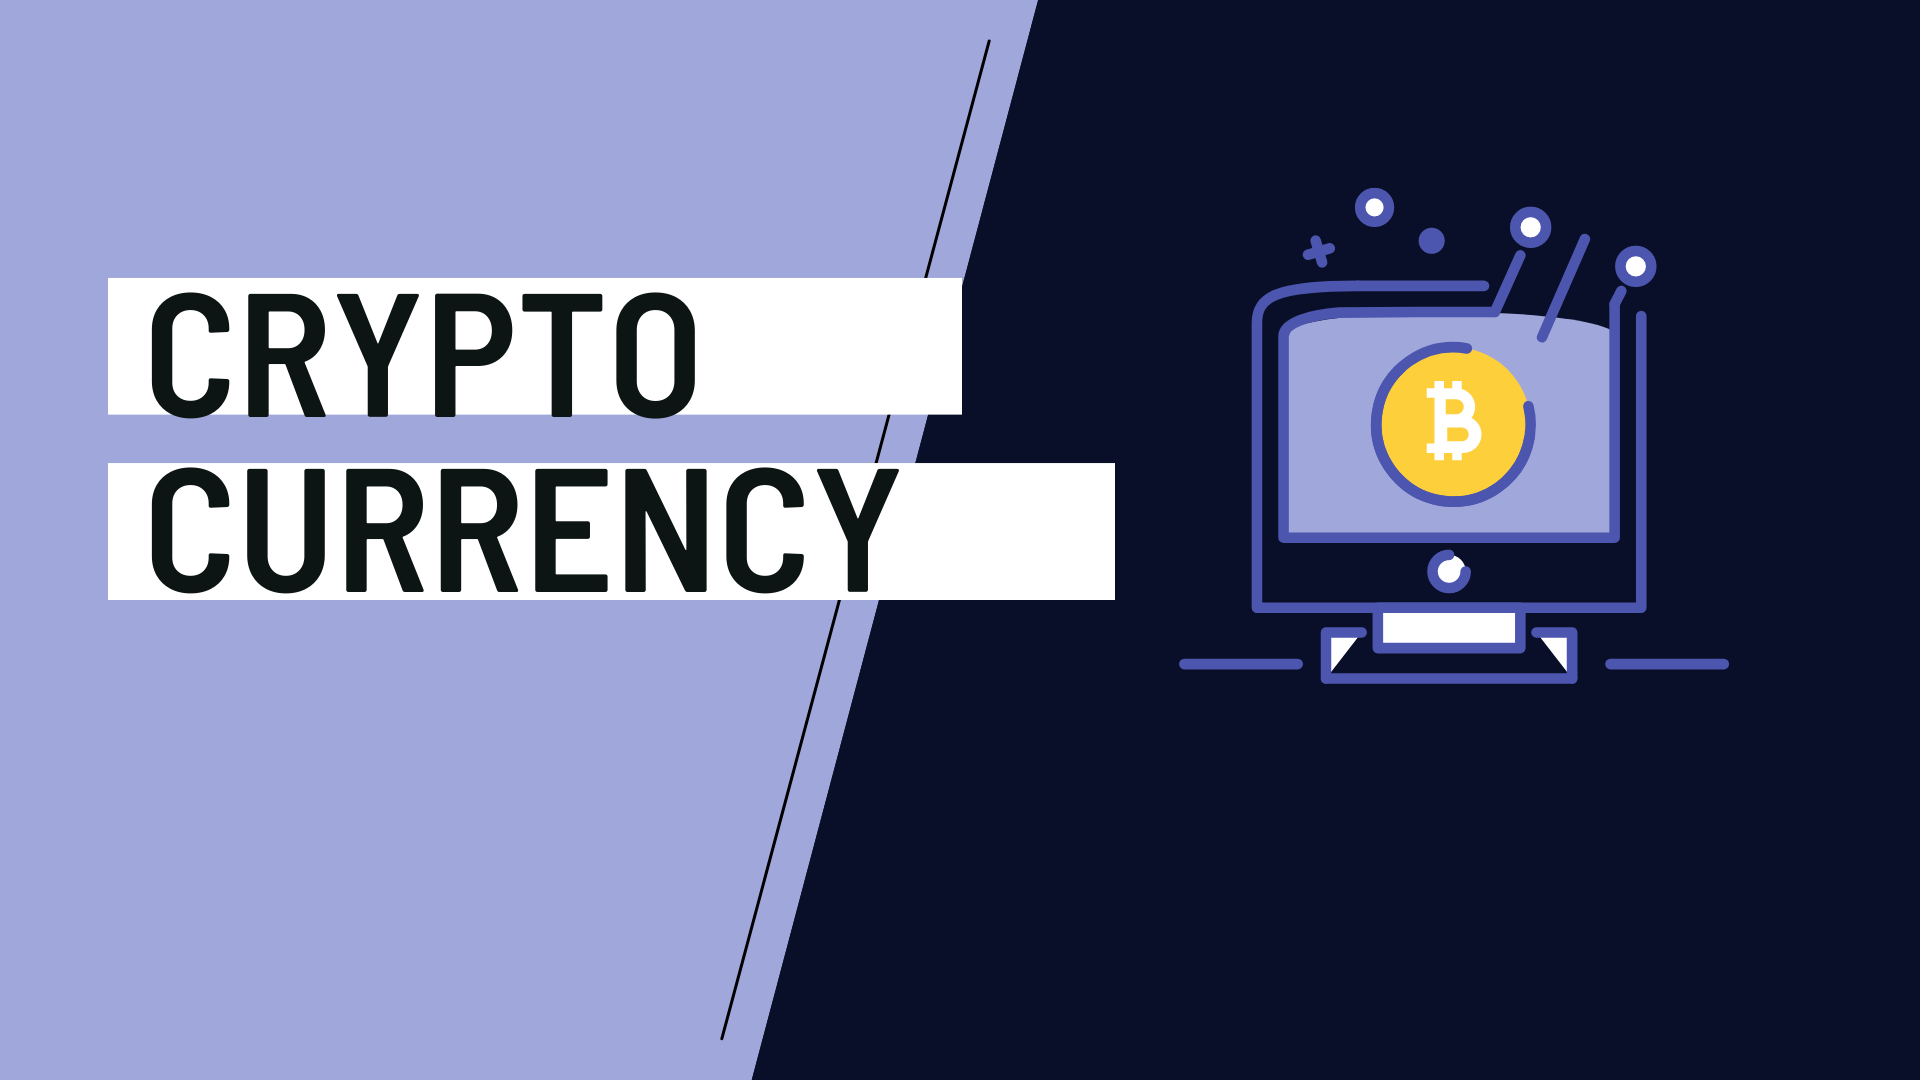 Crypto currency (1)